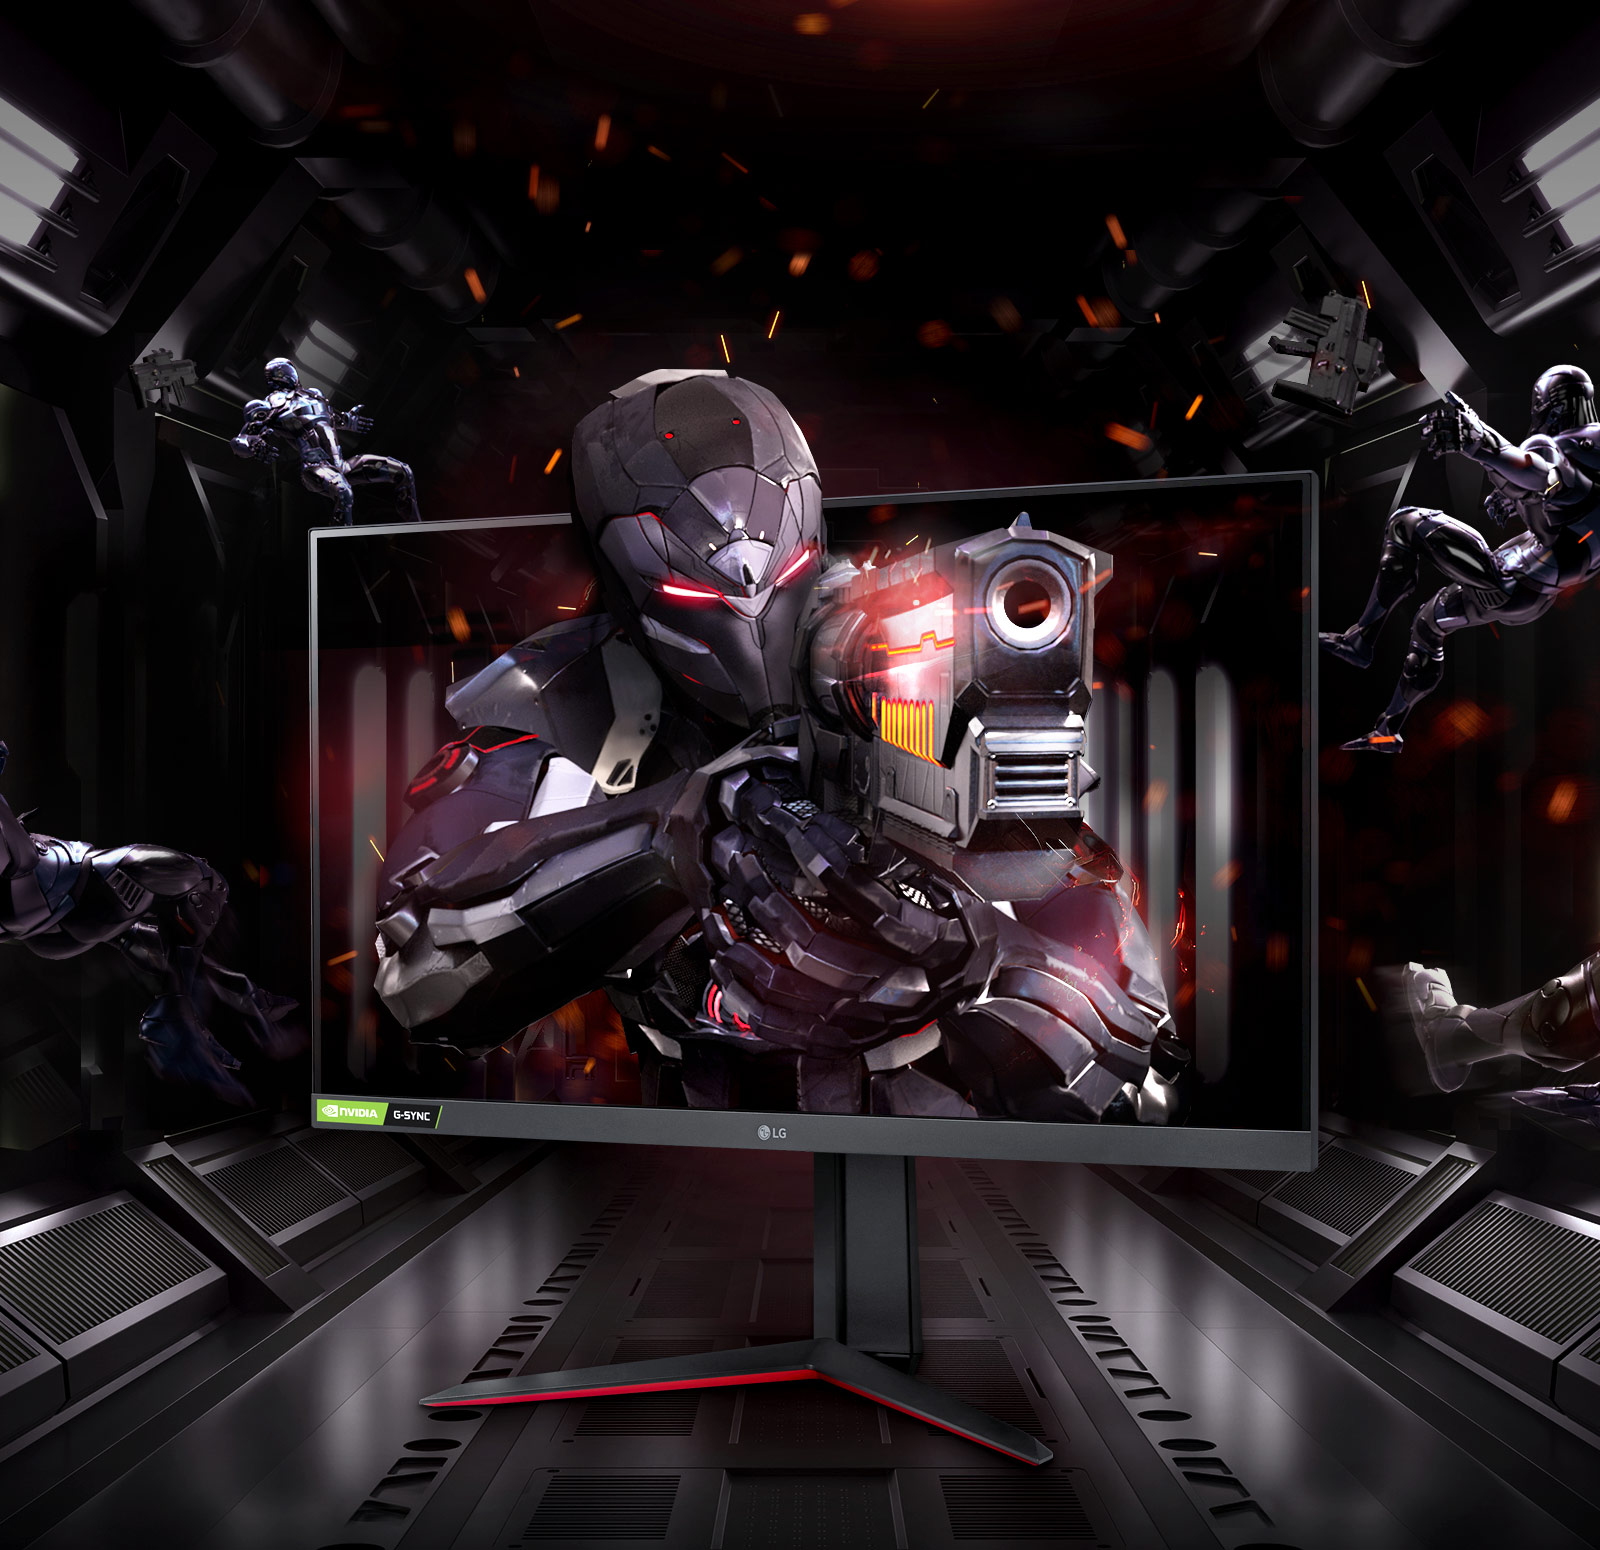 Lg Ultragear Monitor as The Powerful Gear for Your Gaming